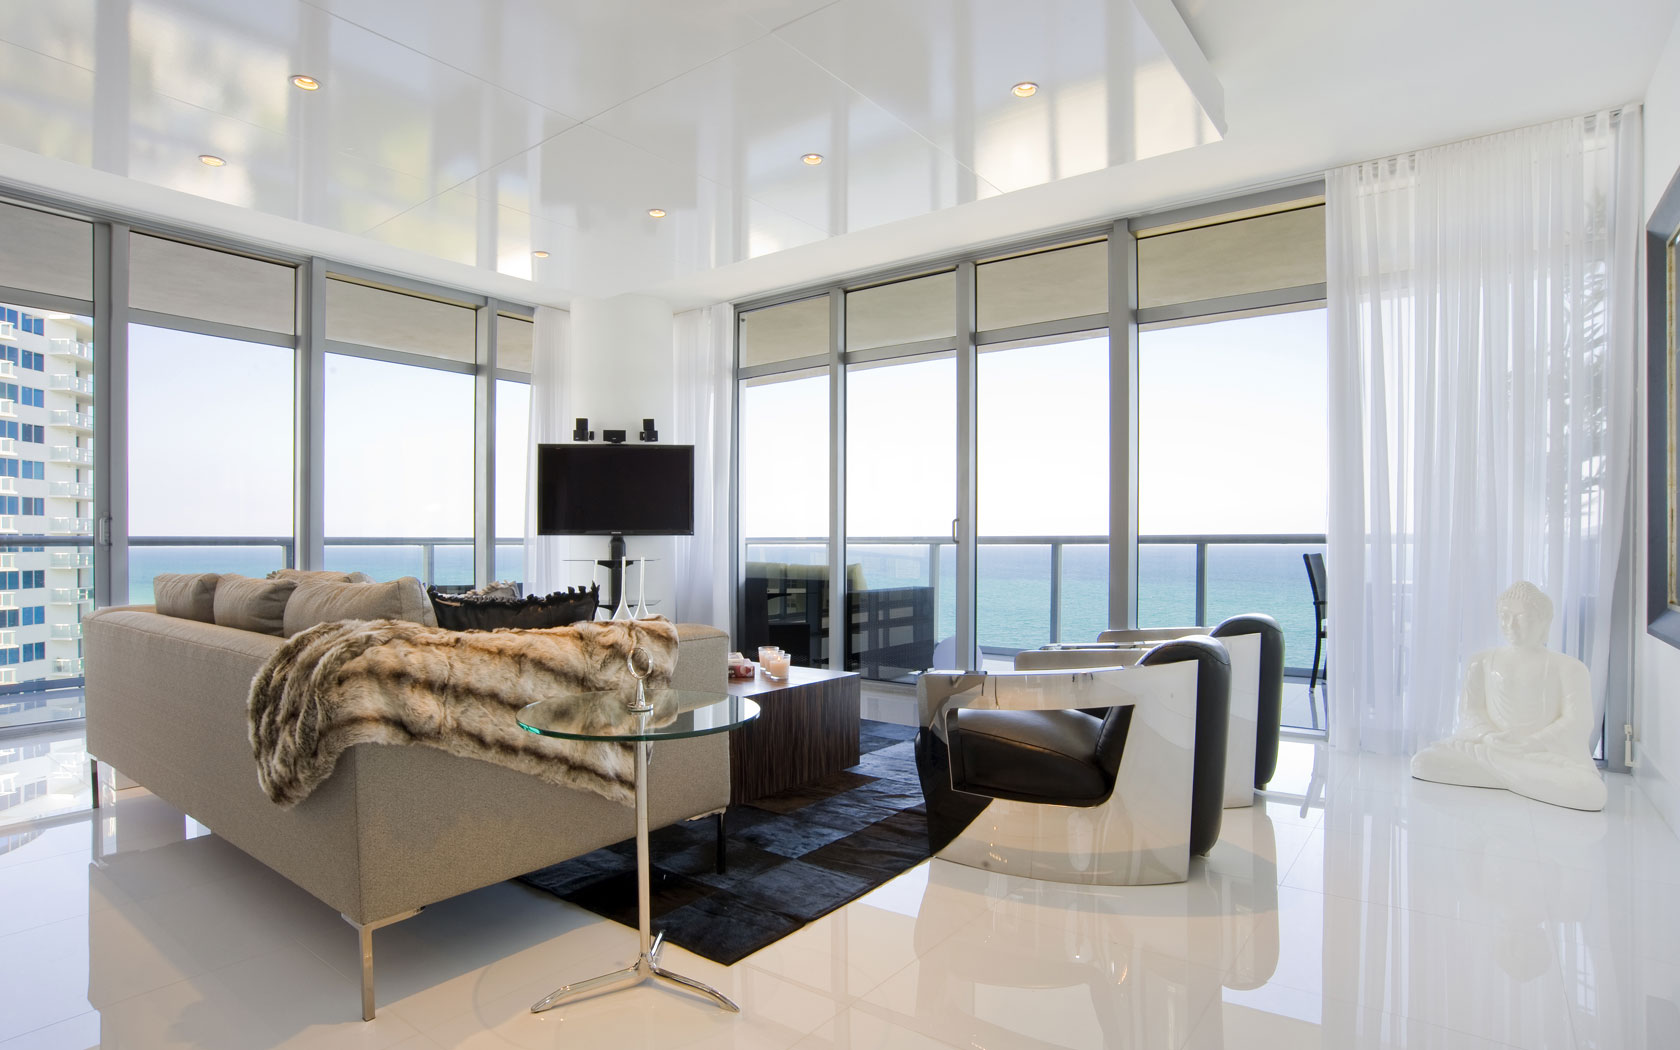 Beach condo interior design ideas joy studio design for Small condo decor